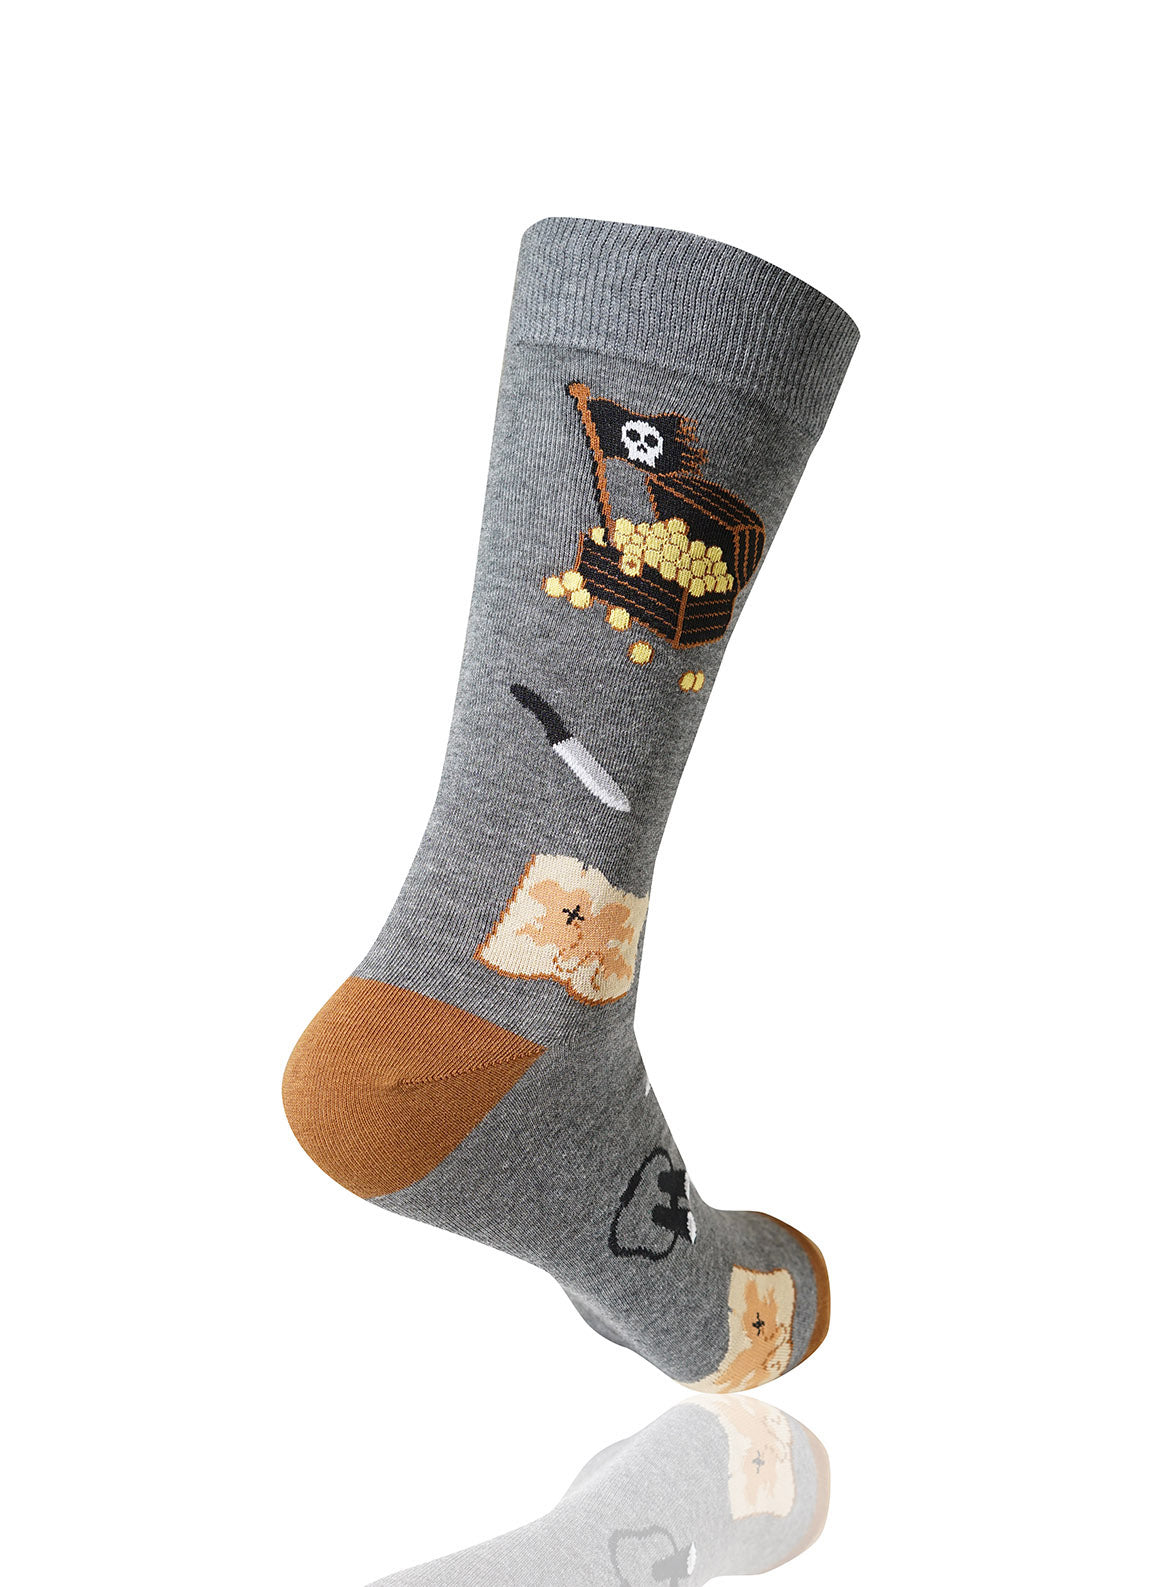 GRAY Treasure Novelty Socks - URBANCREWS